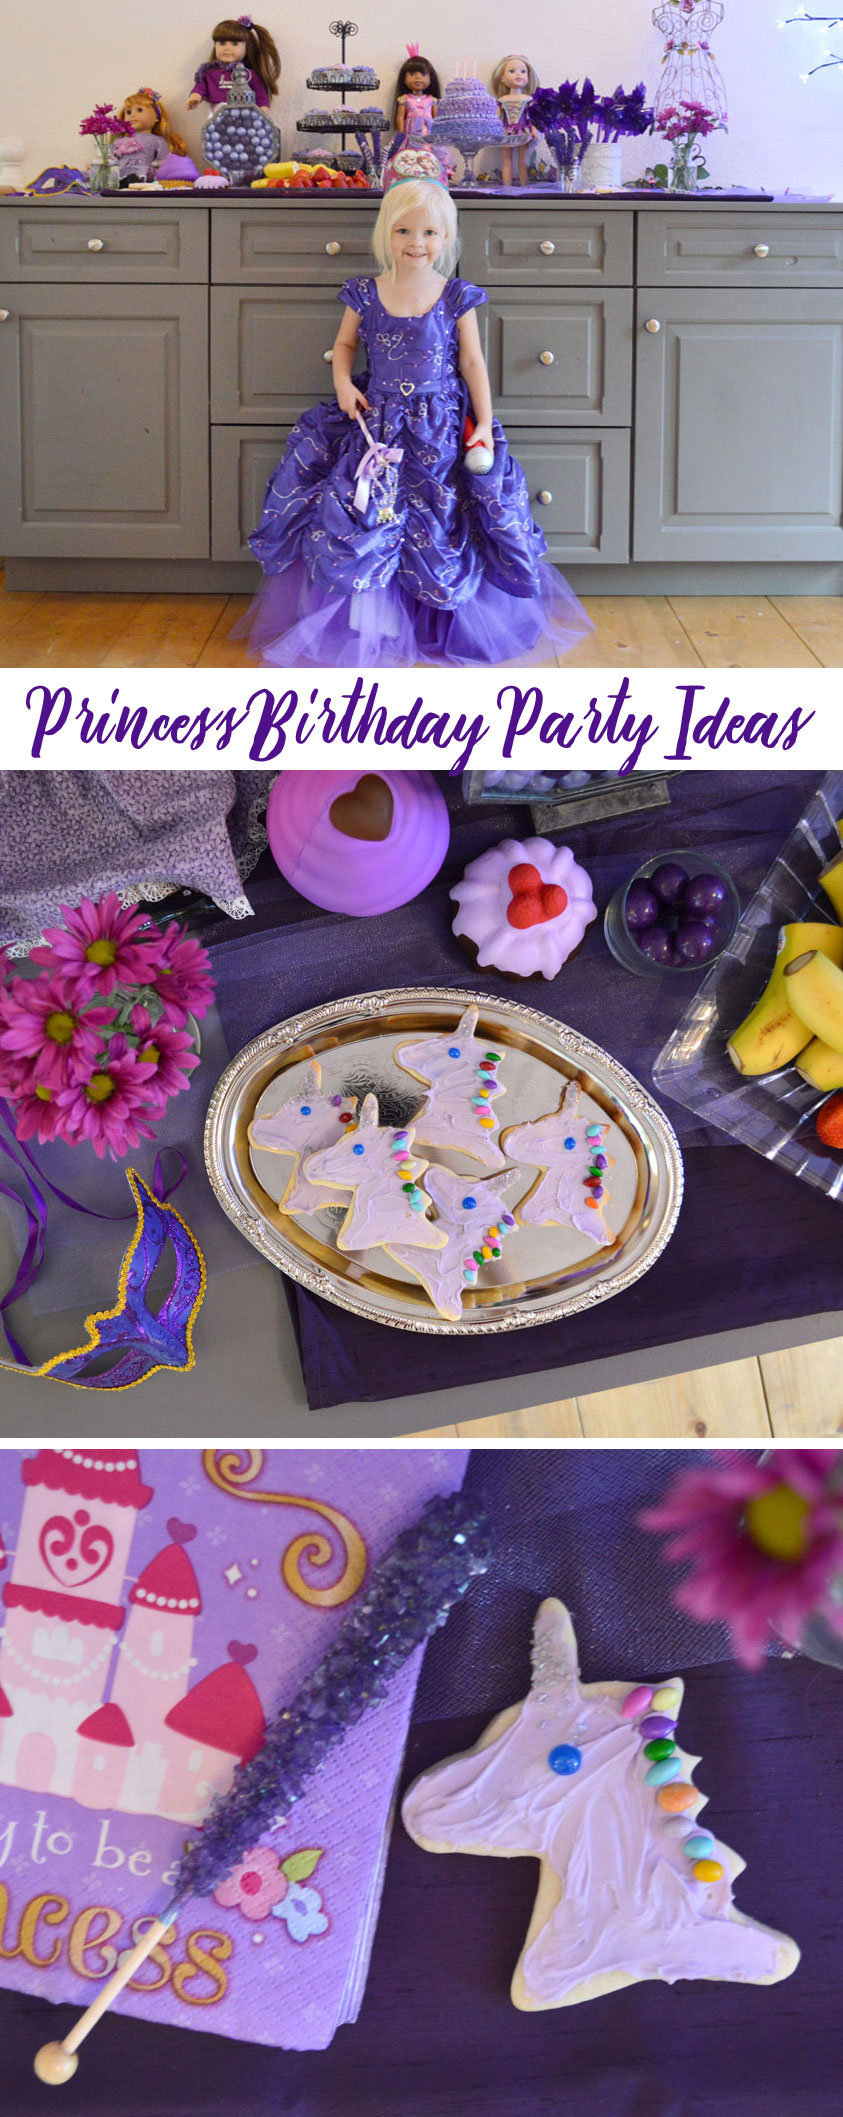 Princess Birthday Party ideas purple unicorn cookies - Mommy Scene